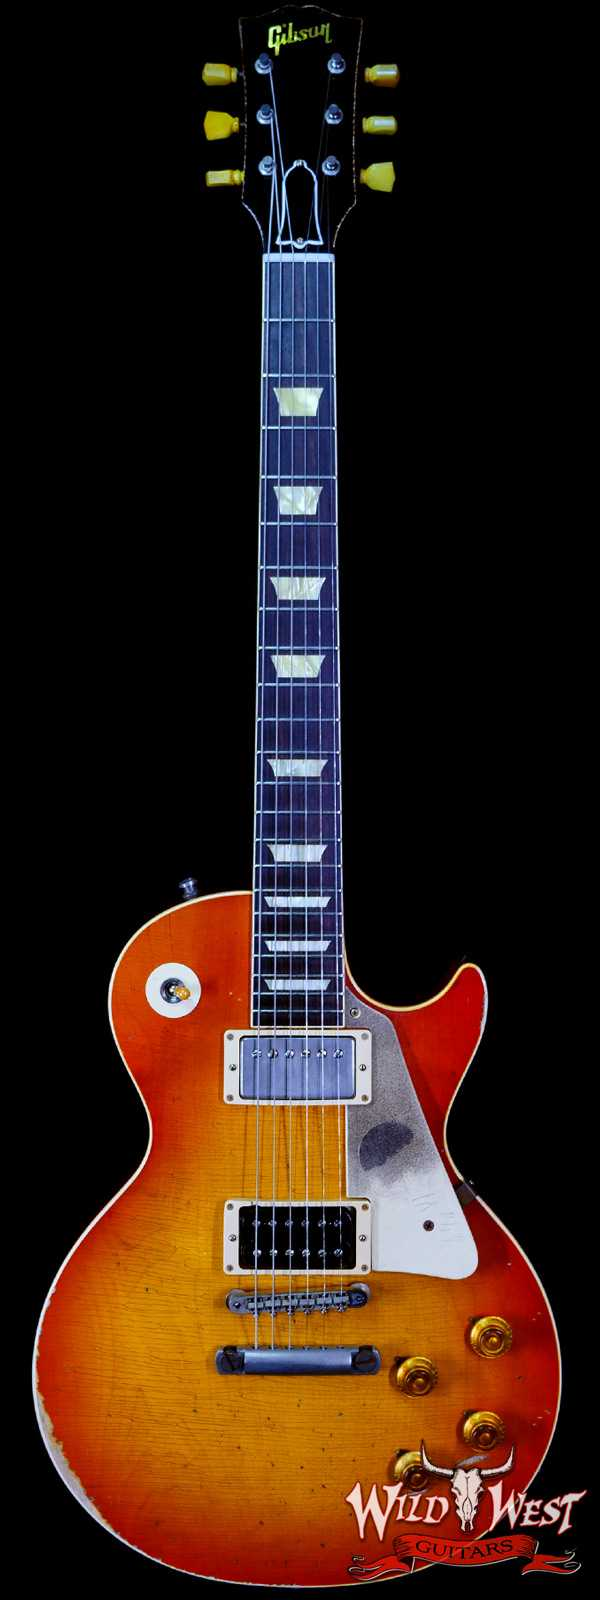 """2017 Gibson Custom Shop True Historic Limited #46 of 50 Slash 1958 Les Paul """"First Standard"""" #8 3096 Replica Aged Signed"""